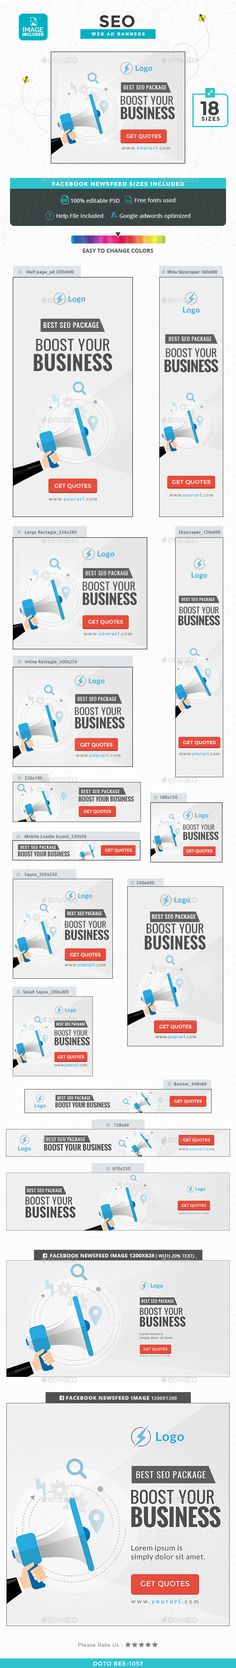 SEO Banners — Photoshop PSD #search #promotions • Available here → https://graphicriver.net/item/seo-banners/15015715?ref=pxcr